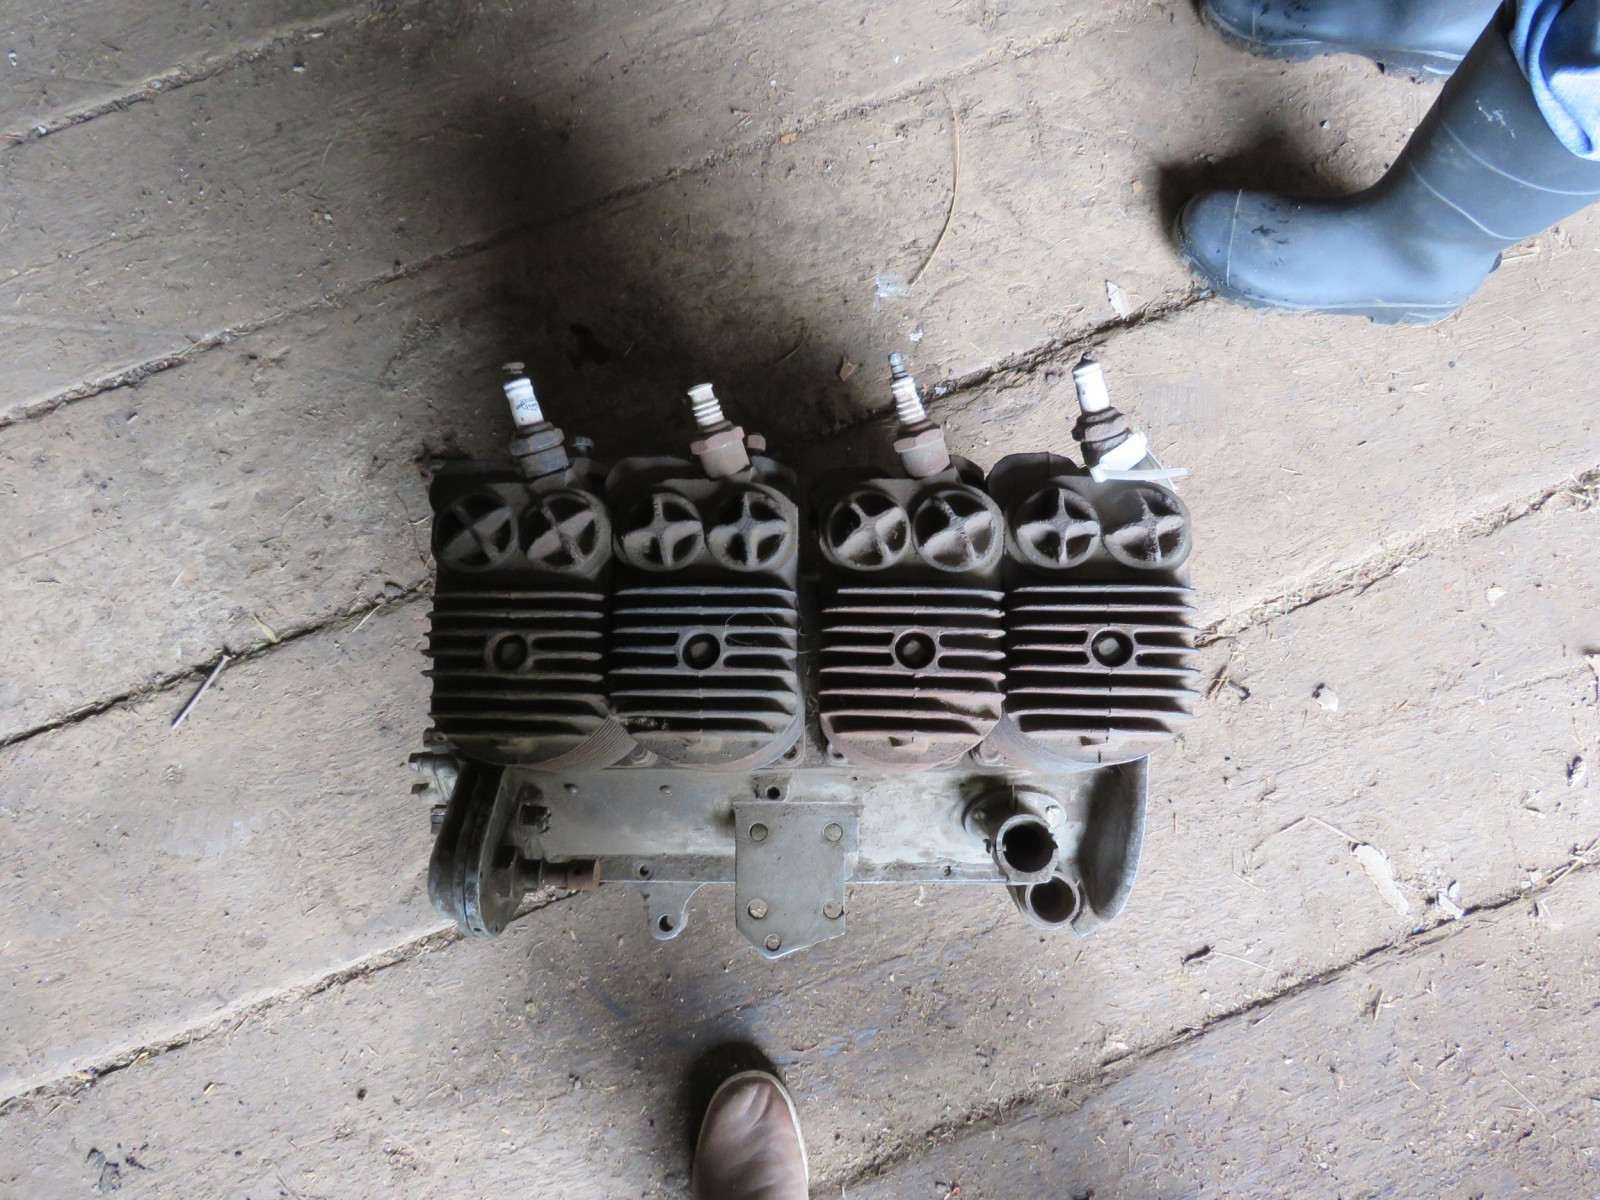 Rare Henderson Motorcycle Cutaway 4 cylinder motor - Image 7